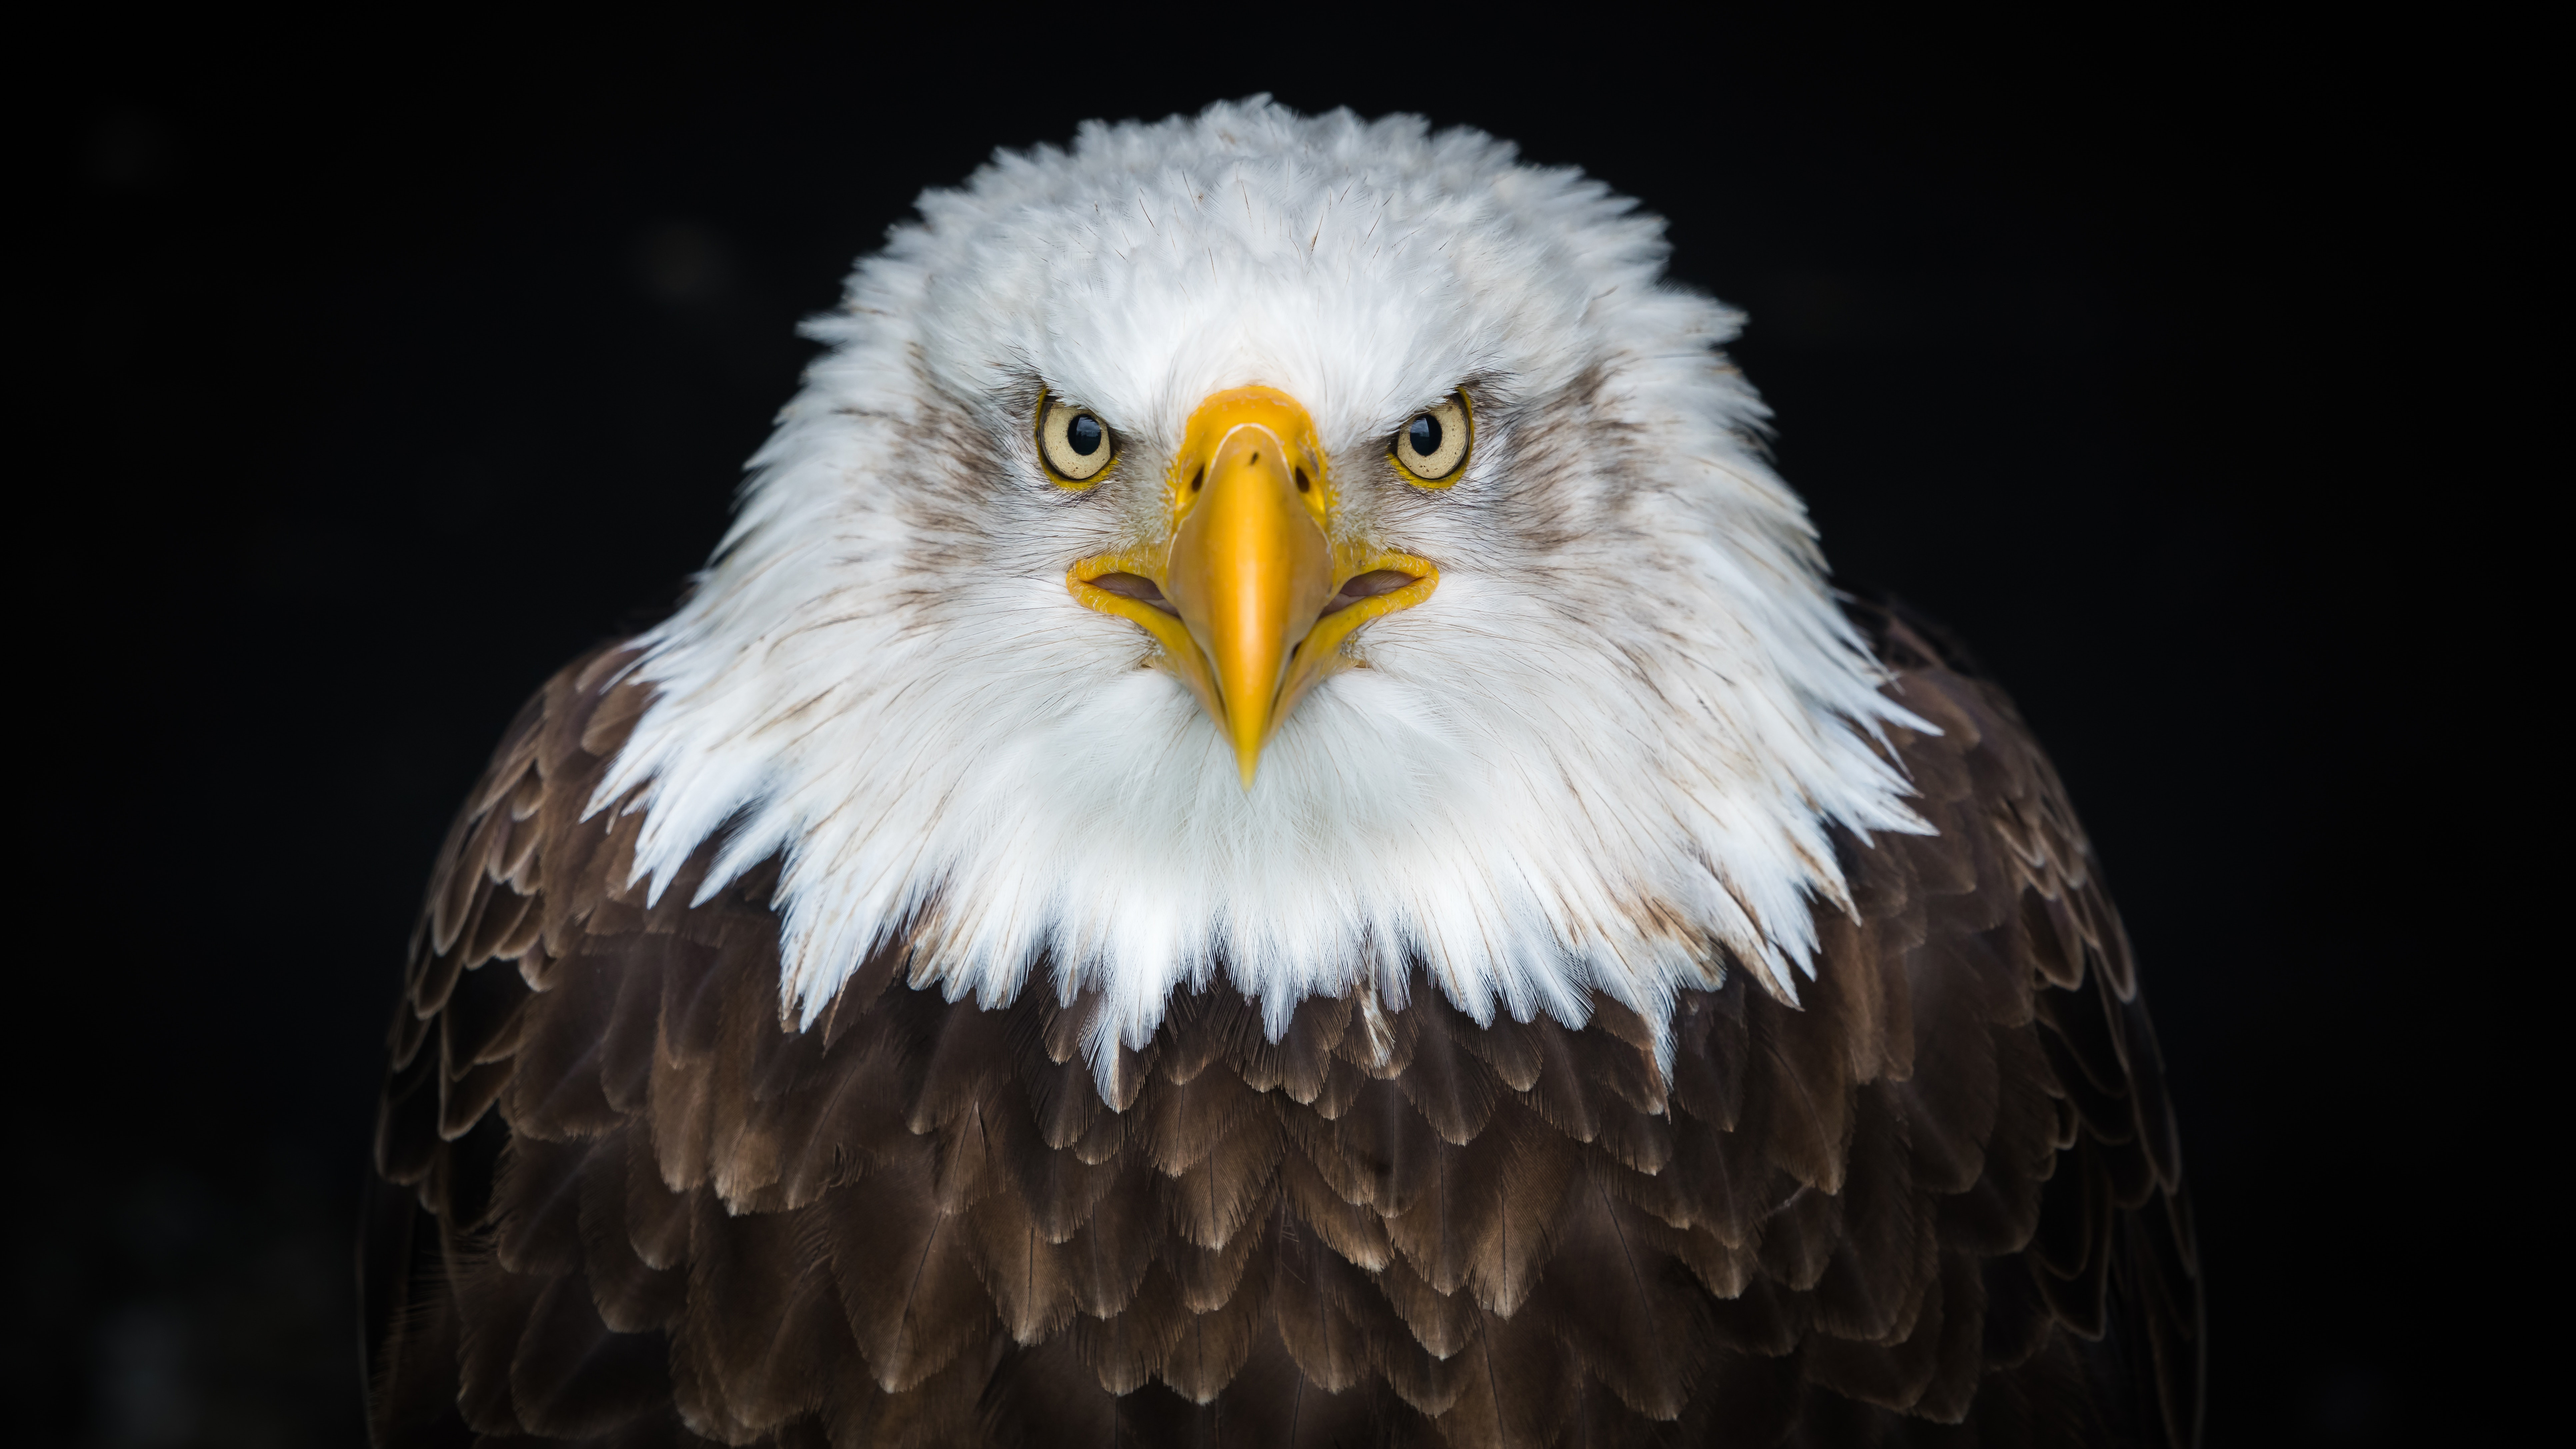 Bald Eagle 4k 8k Wallpapers Hd Wallpapers